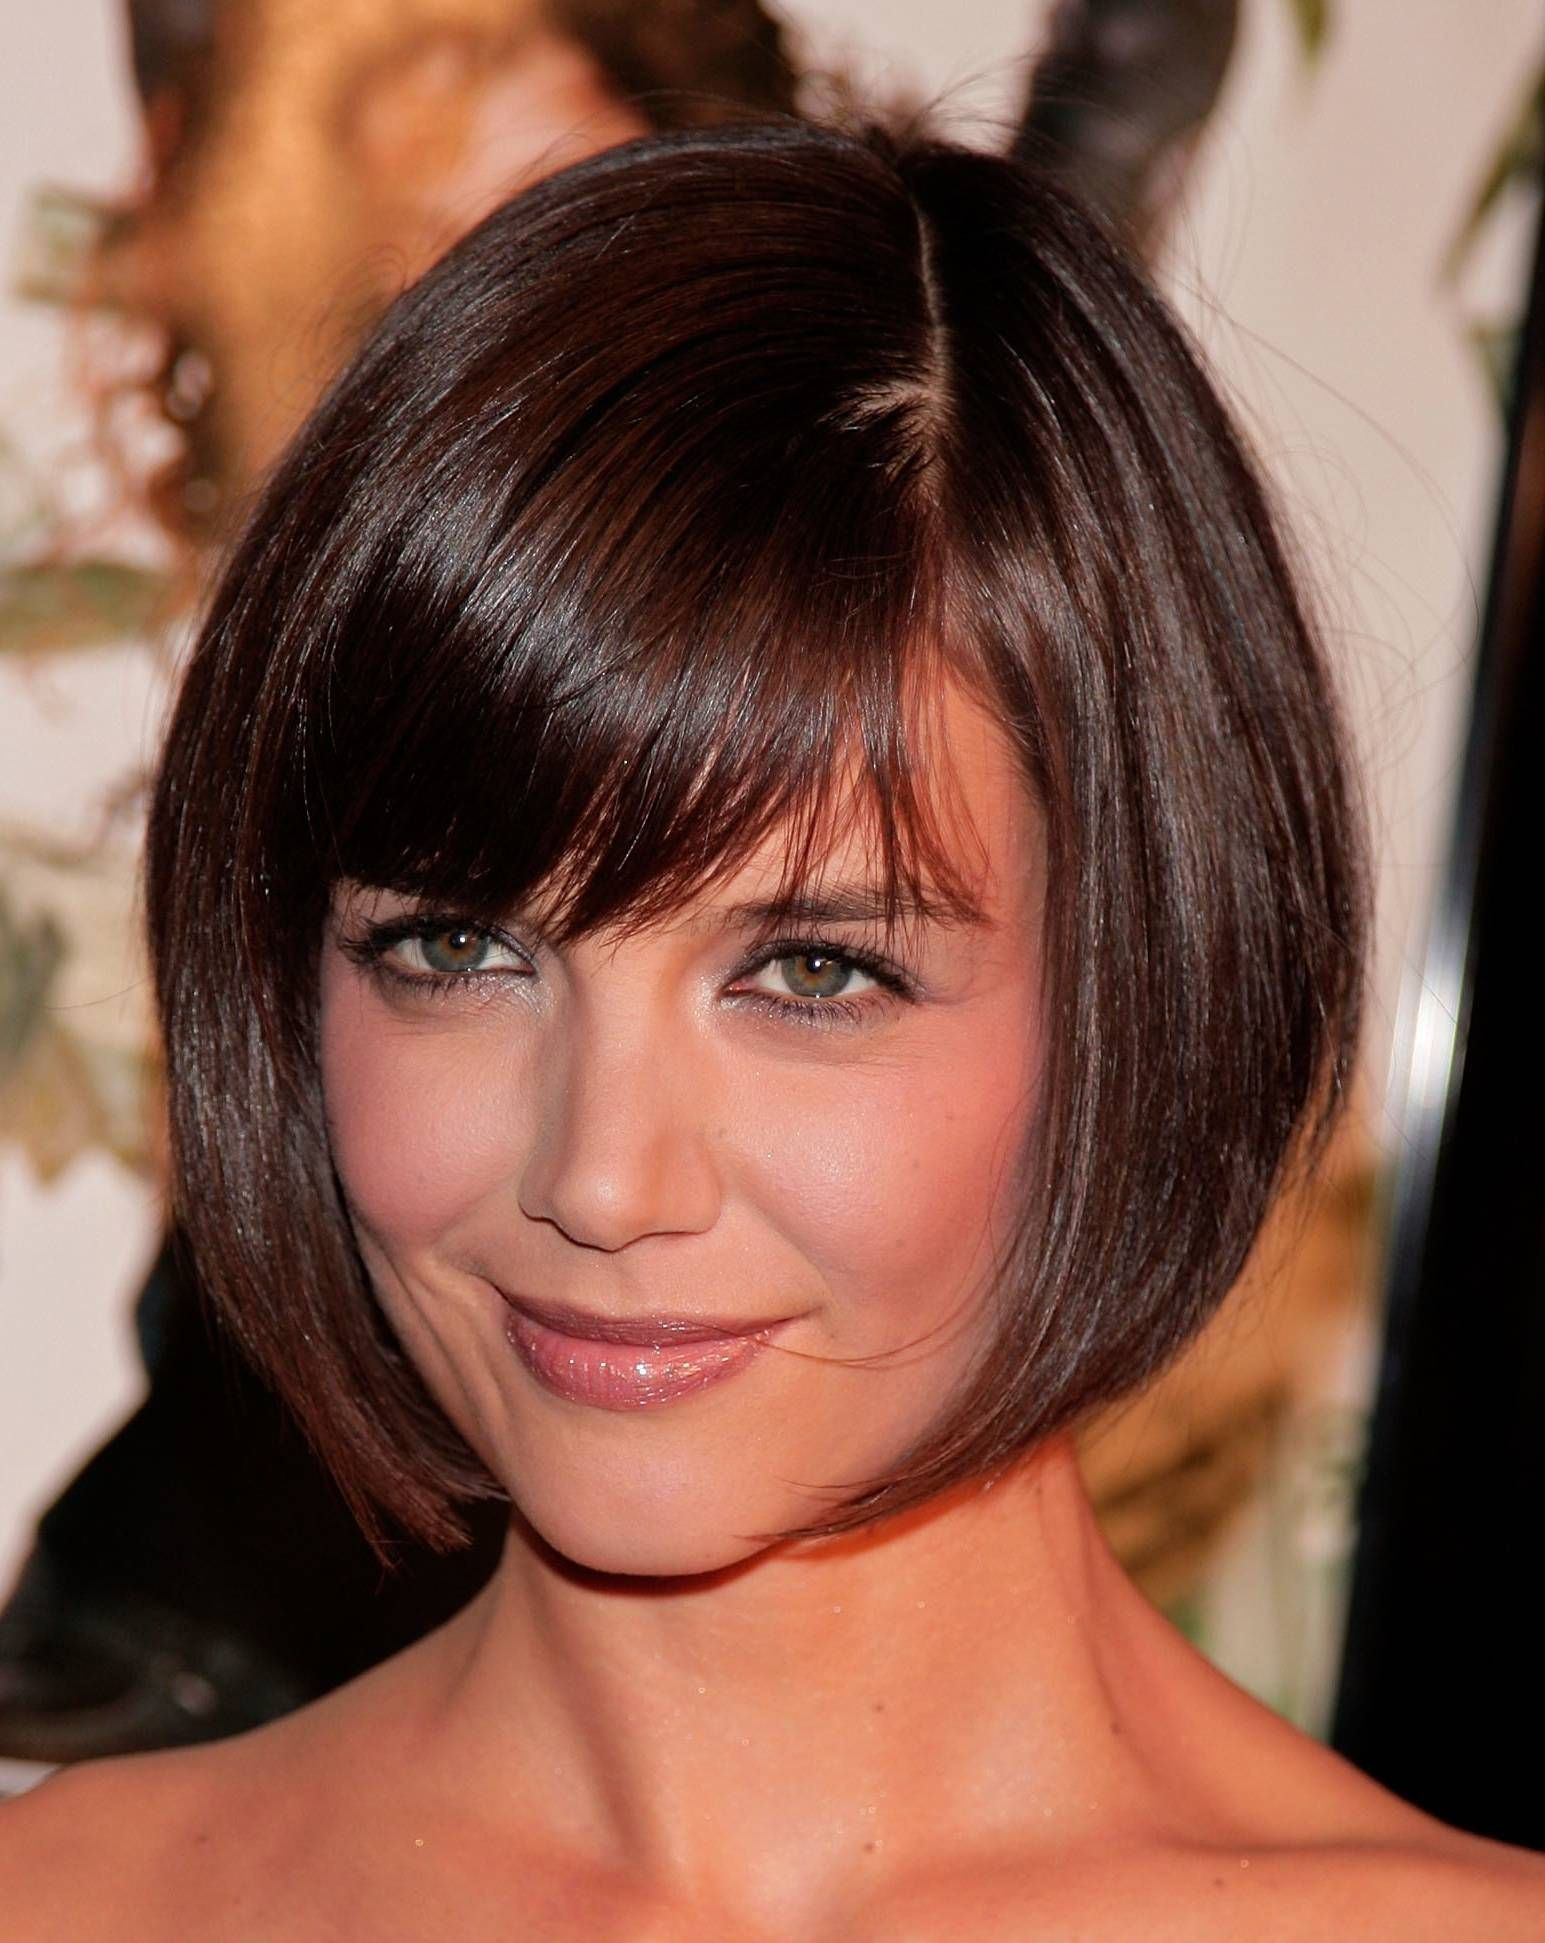 katie holmes: photo galleries of her hair over the years | chin